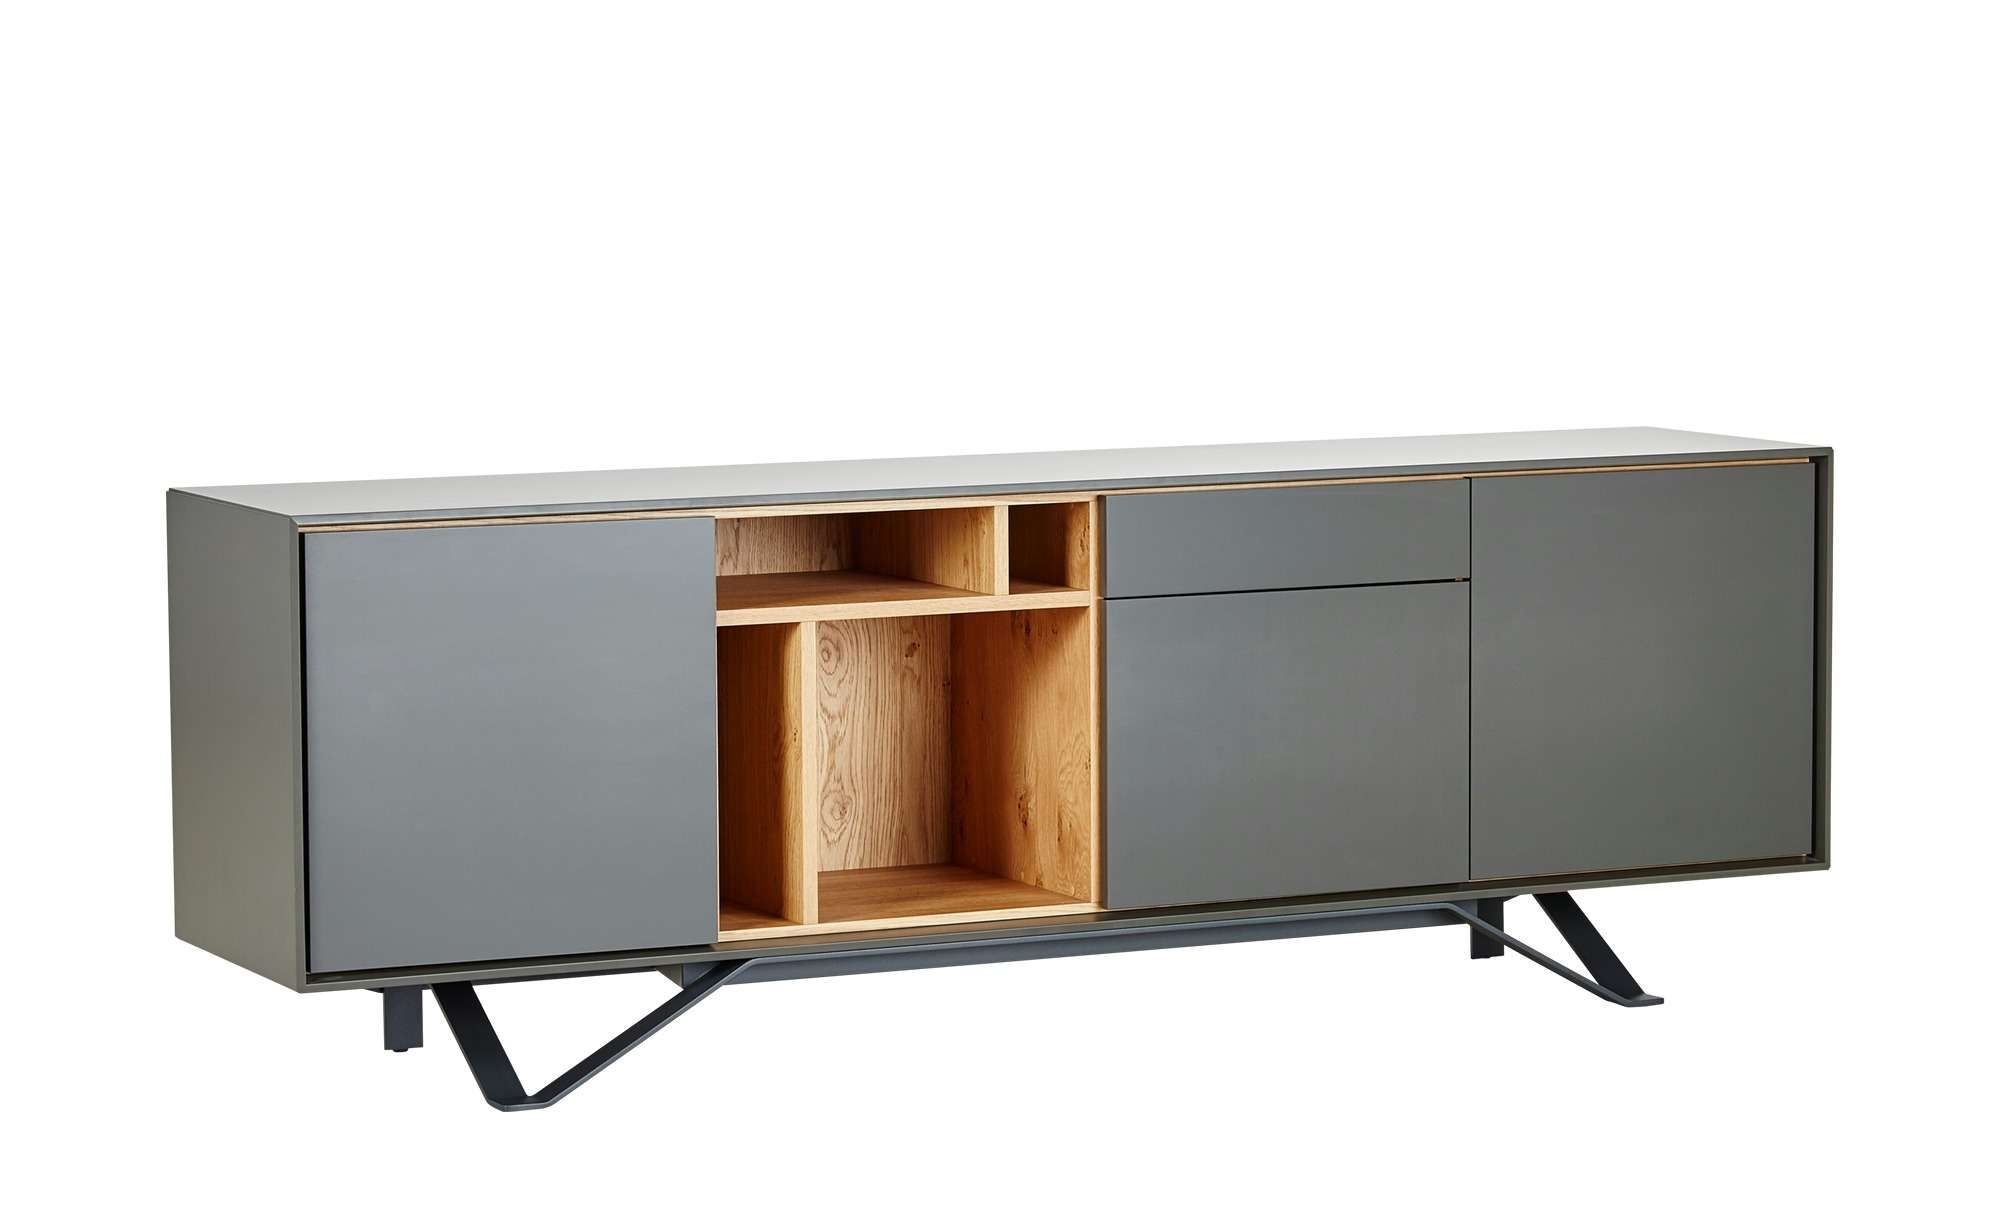 Hülsta Sideboard Scopia | Möbel Höffner Intended For Hulsta Sideboards (View 14 of 20)